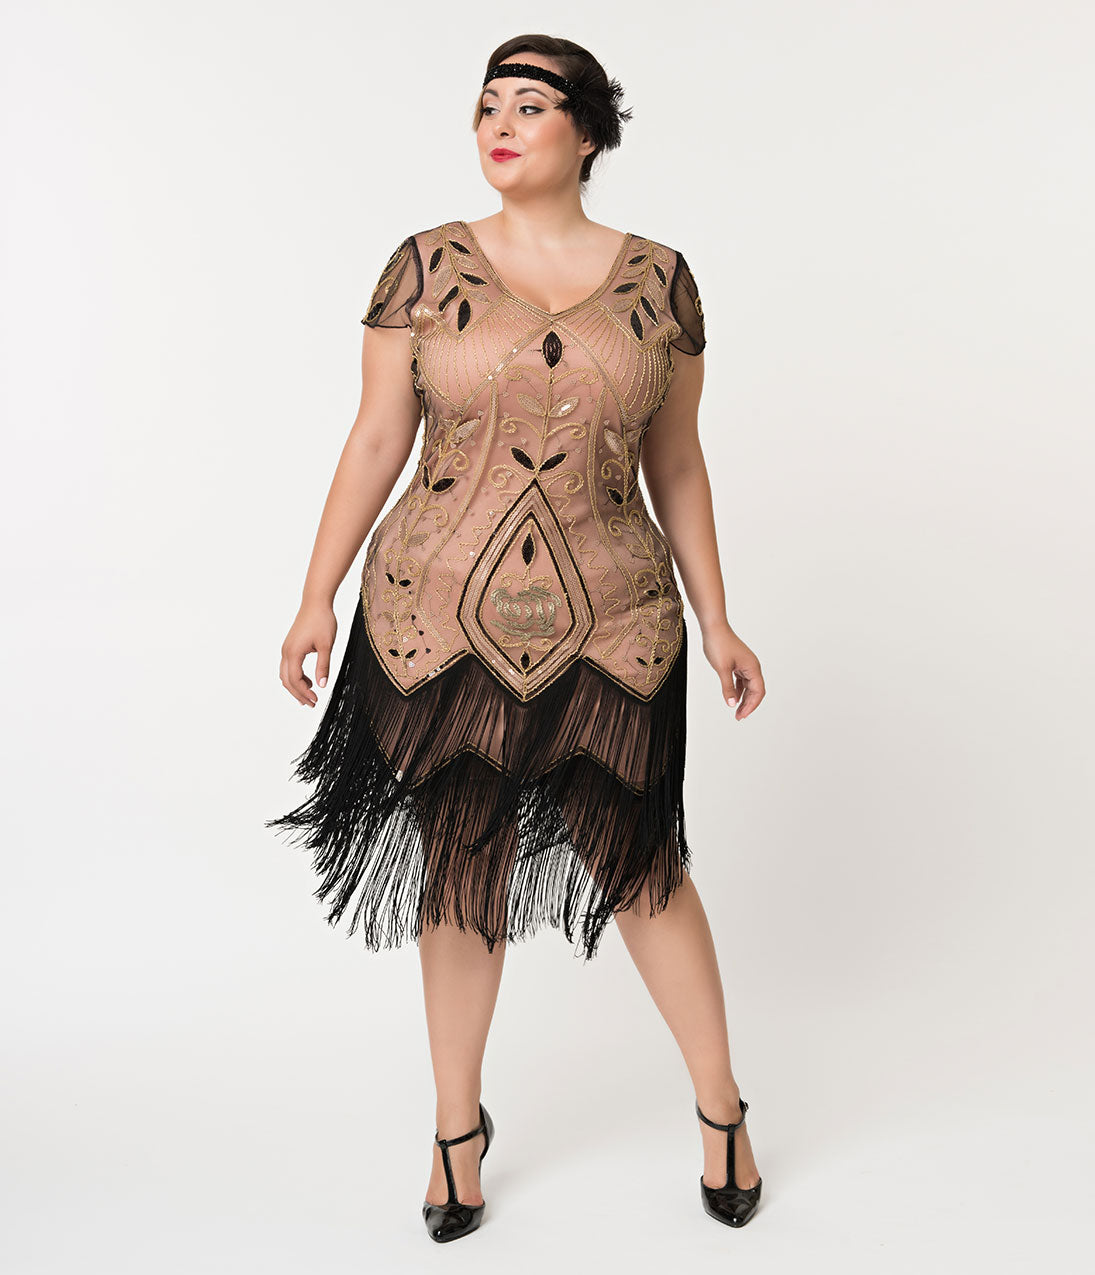 Flapper Costume: How to Dress Like a 20s Flapper Girl Unique Vintage Plus Size 1920S Gold Rose  Pink Noele Fringe Flapper Dress $48.00 AT vintagedancer.com